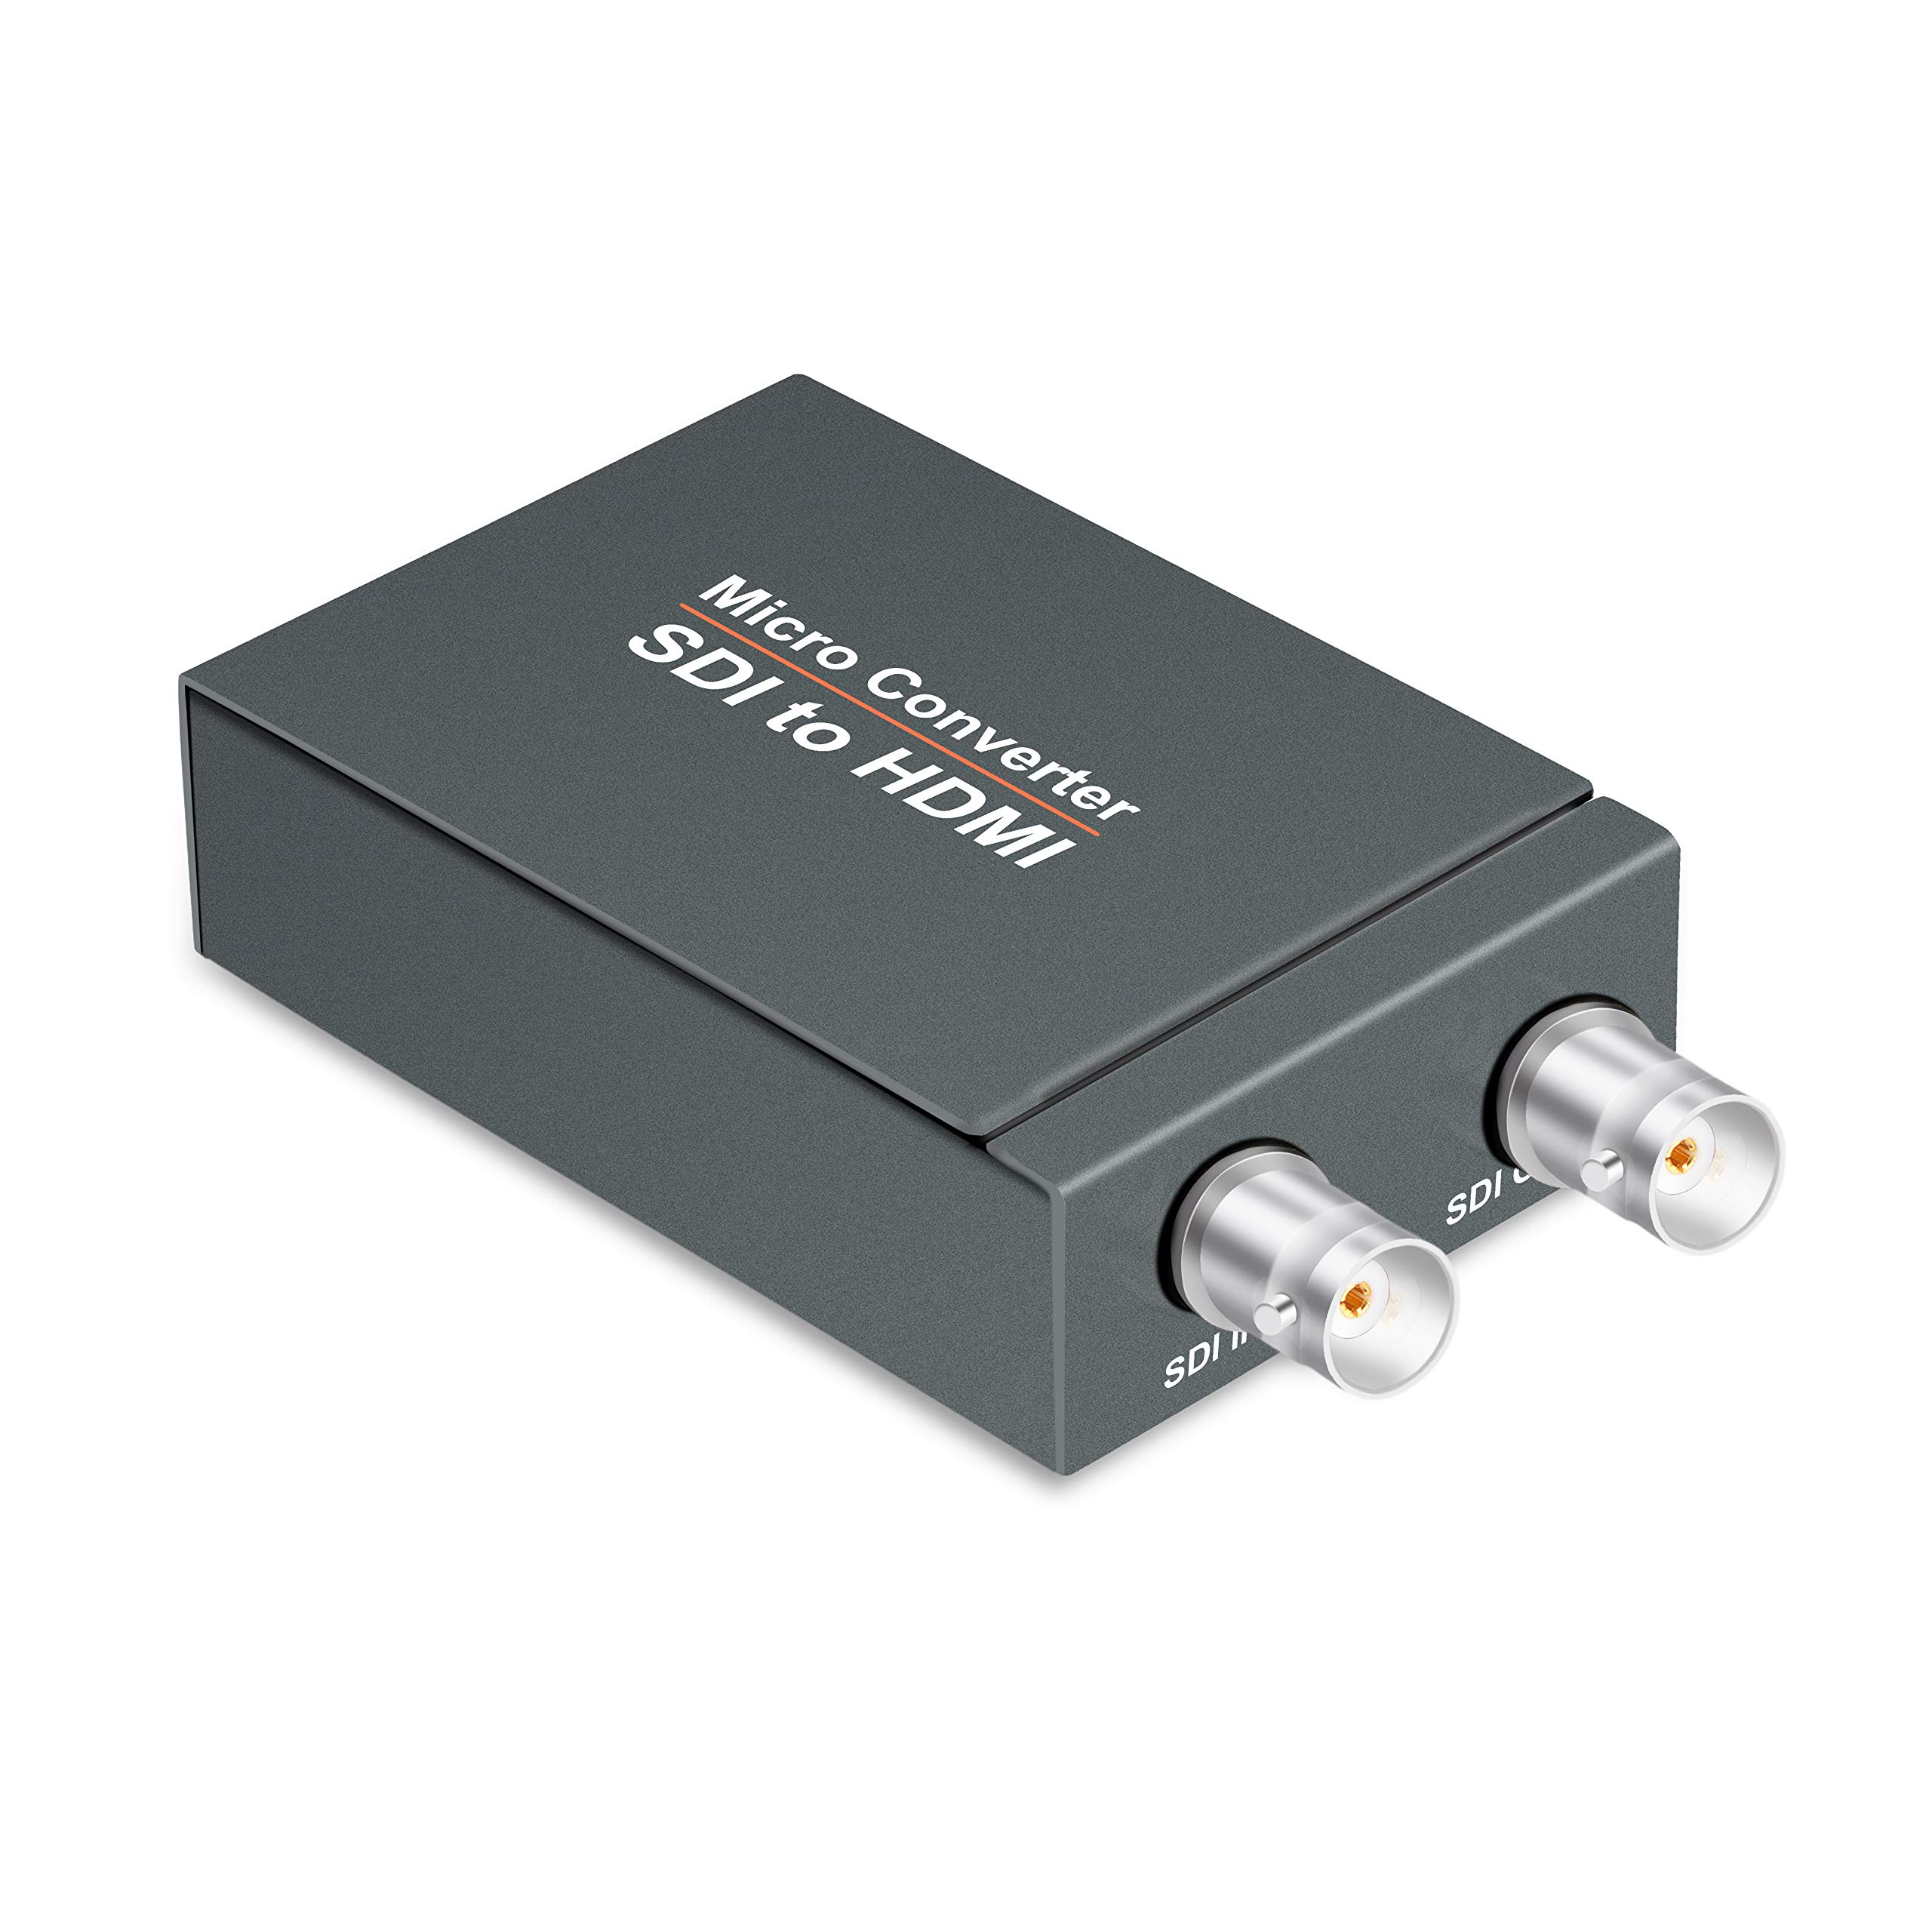 FERRISA Micro Converter SDI to HDMI(with Power Supply),3G-SDI/HD-SDI/SD-SDI to HDMI Converter Adapter,SDI in HDMI out SDI Loopout,1080P Video Audio Splitter,Support HDCP 1.3 for Camcorder Camera to TV